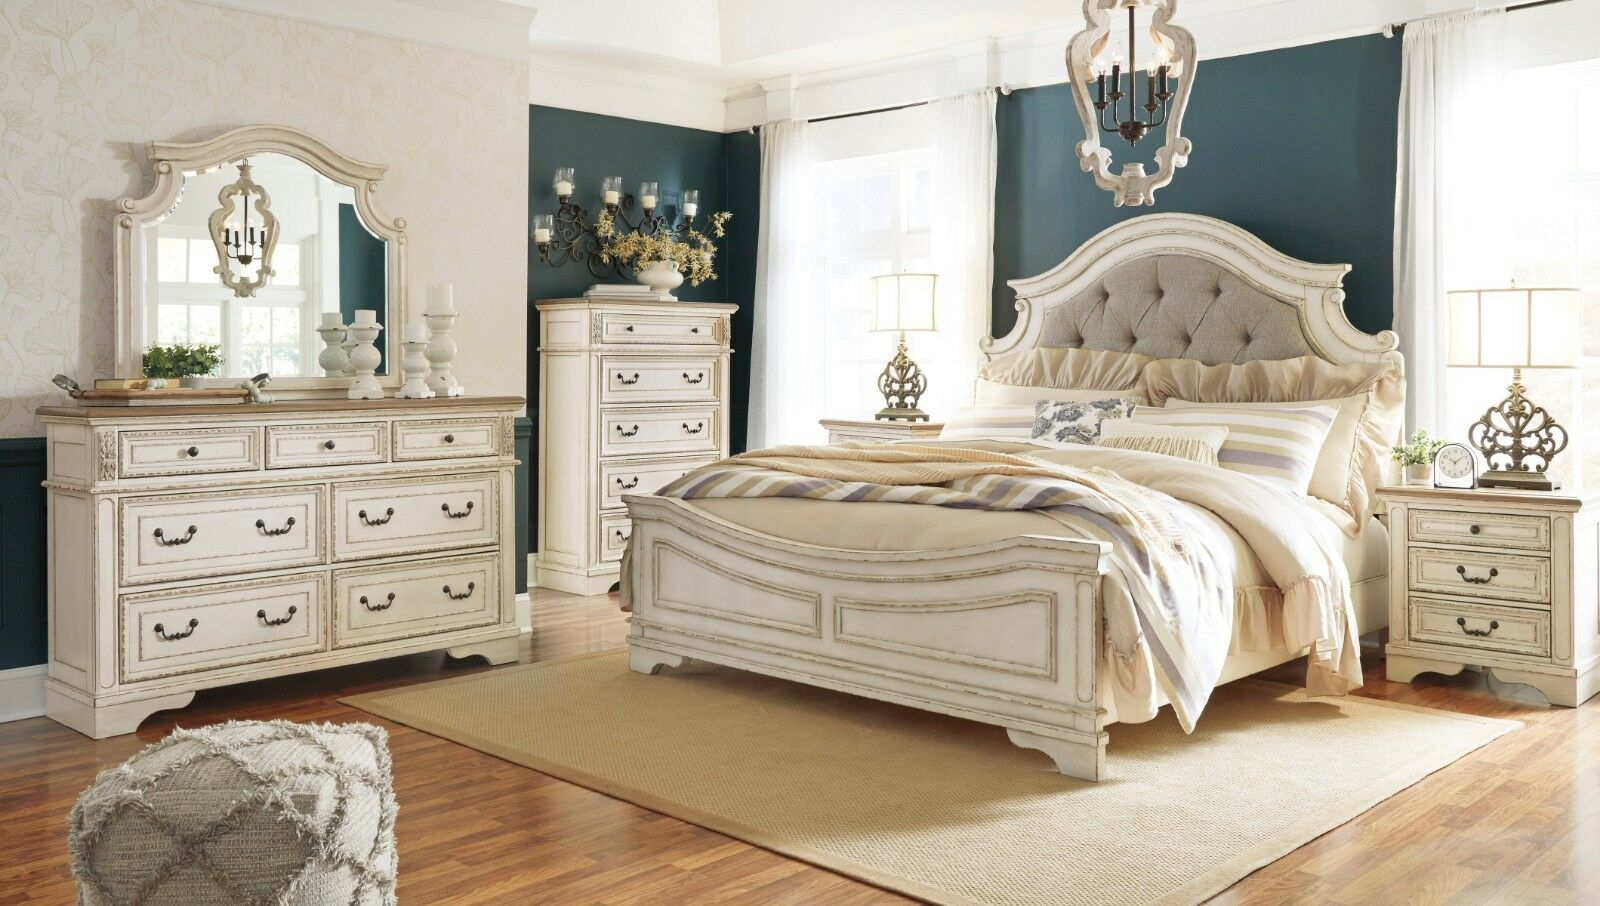 New Bedroom Set Ashley Furniture Realyn Queen 6 Piece Chipped White Bedroom Set